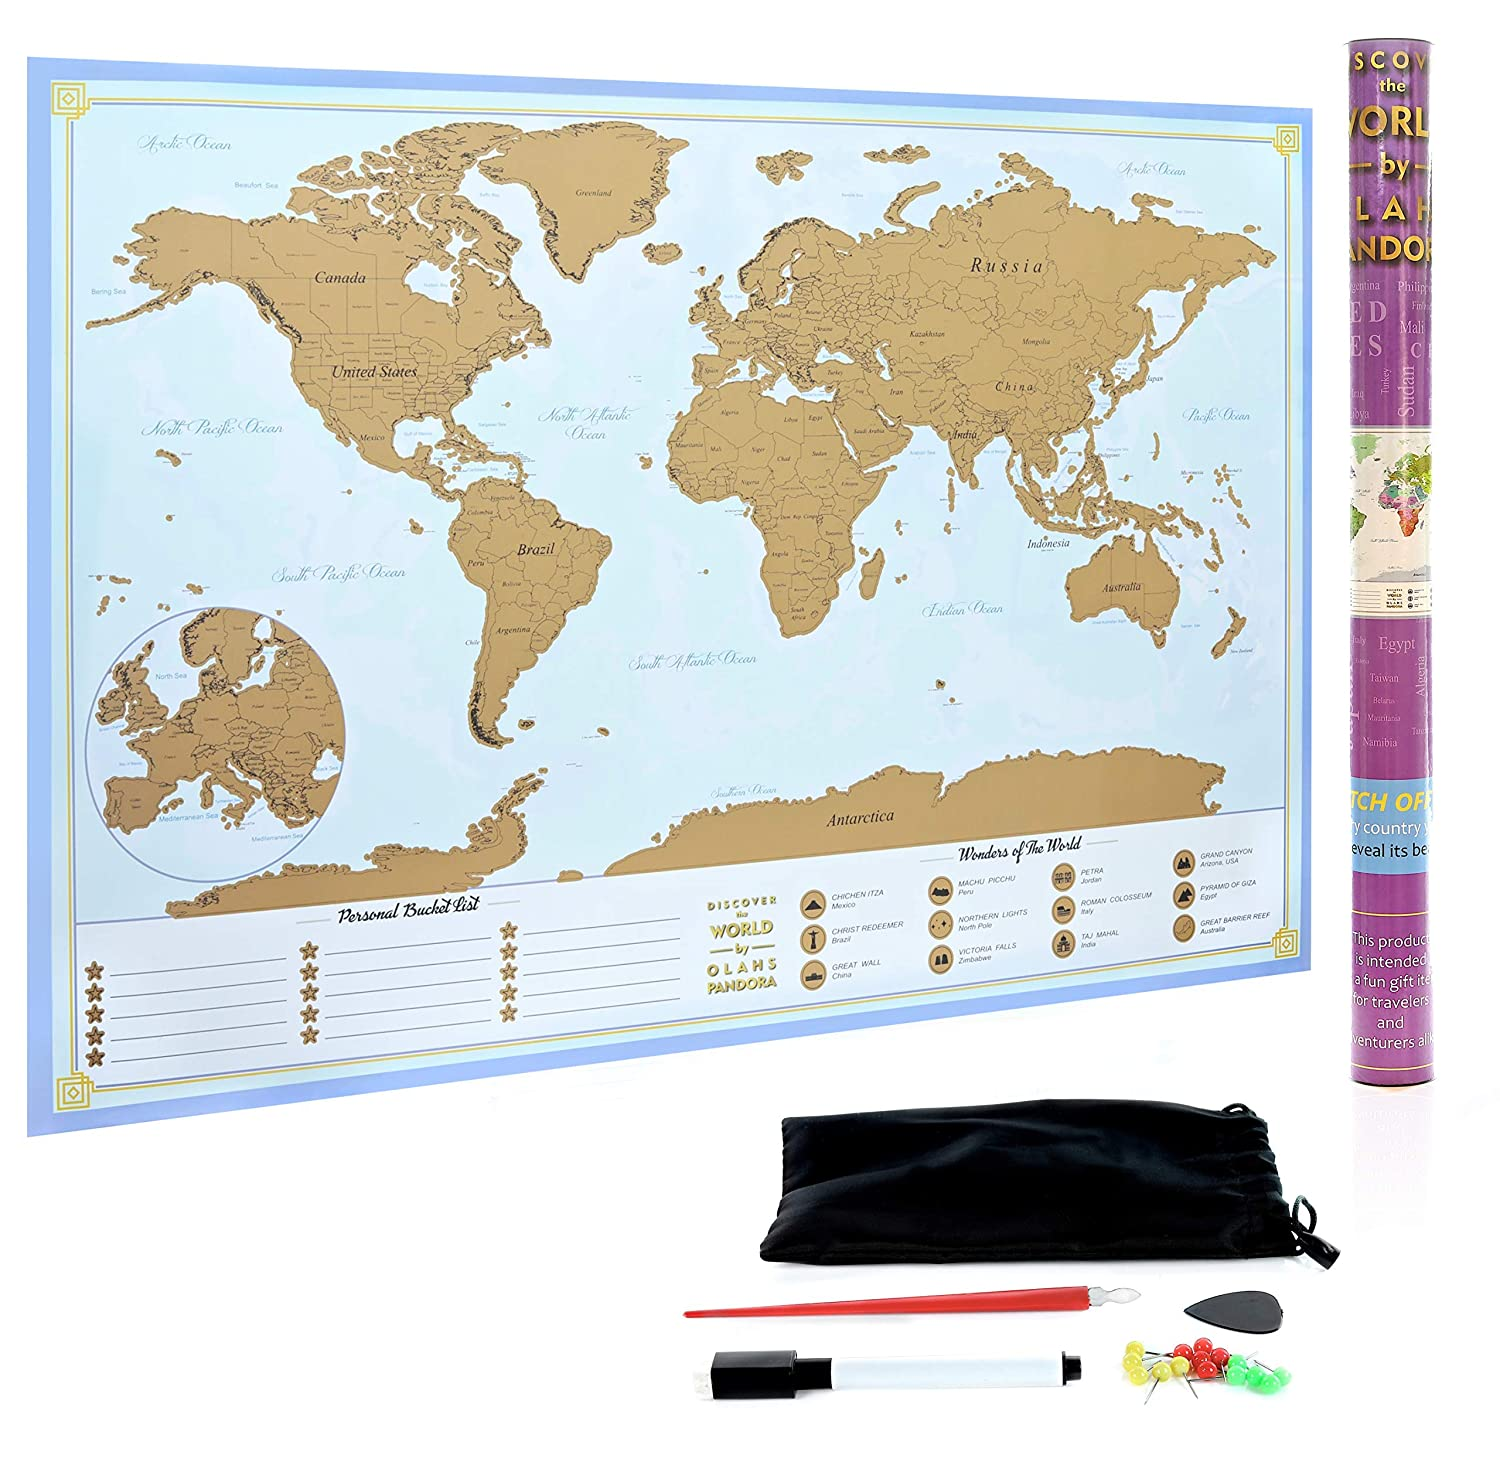 Map Of The World Detailed.Xl Scratch Off Map Of The World Bucket List Features Wonders Of The World Detailed Us States International Cities Excellent Wanderlust